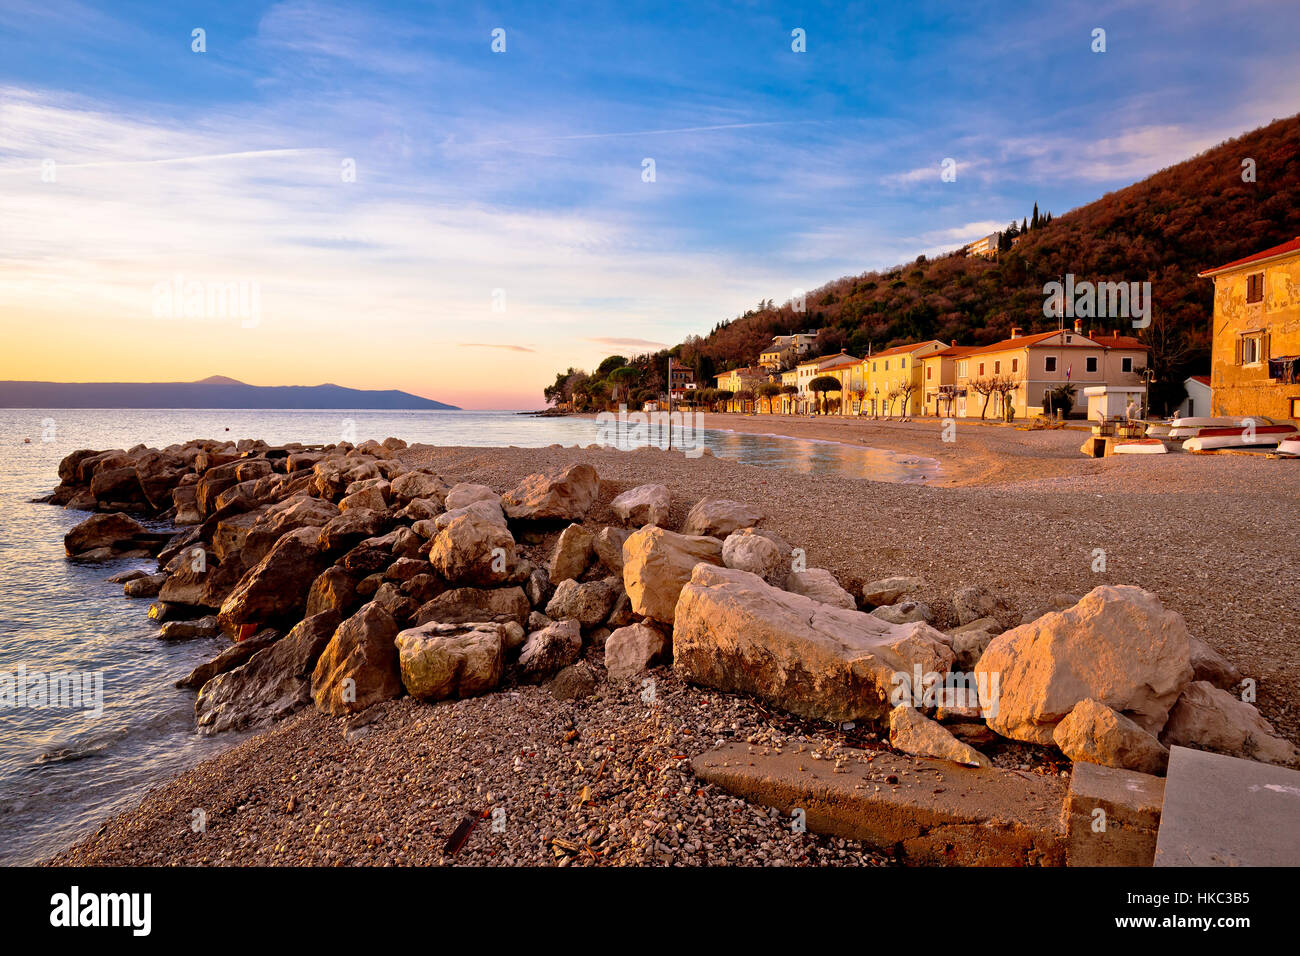 Moscenicka Draga village beach a sunrise, Opatija e la riviera di Croazia Immagini Stock